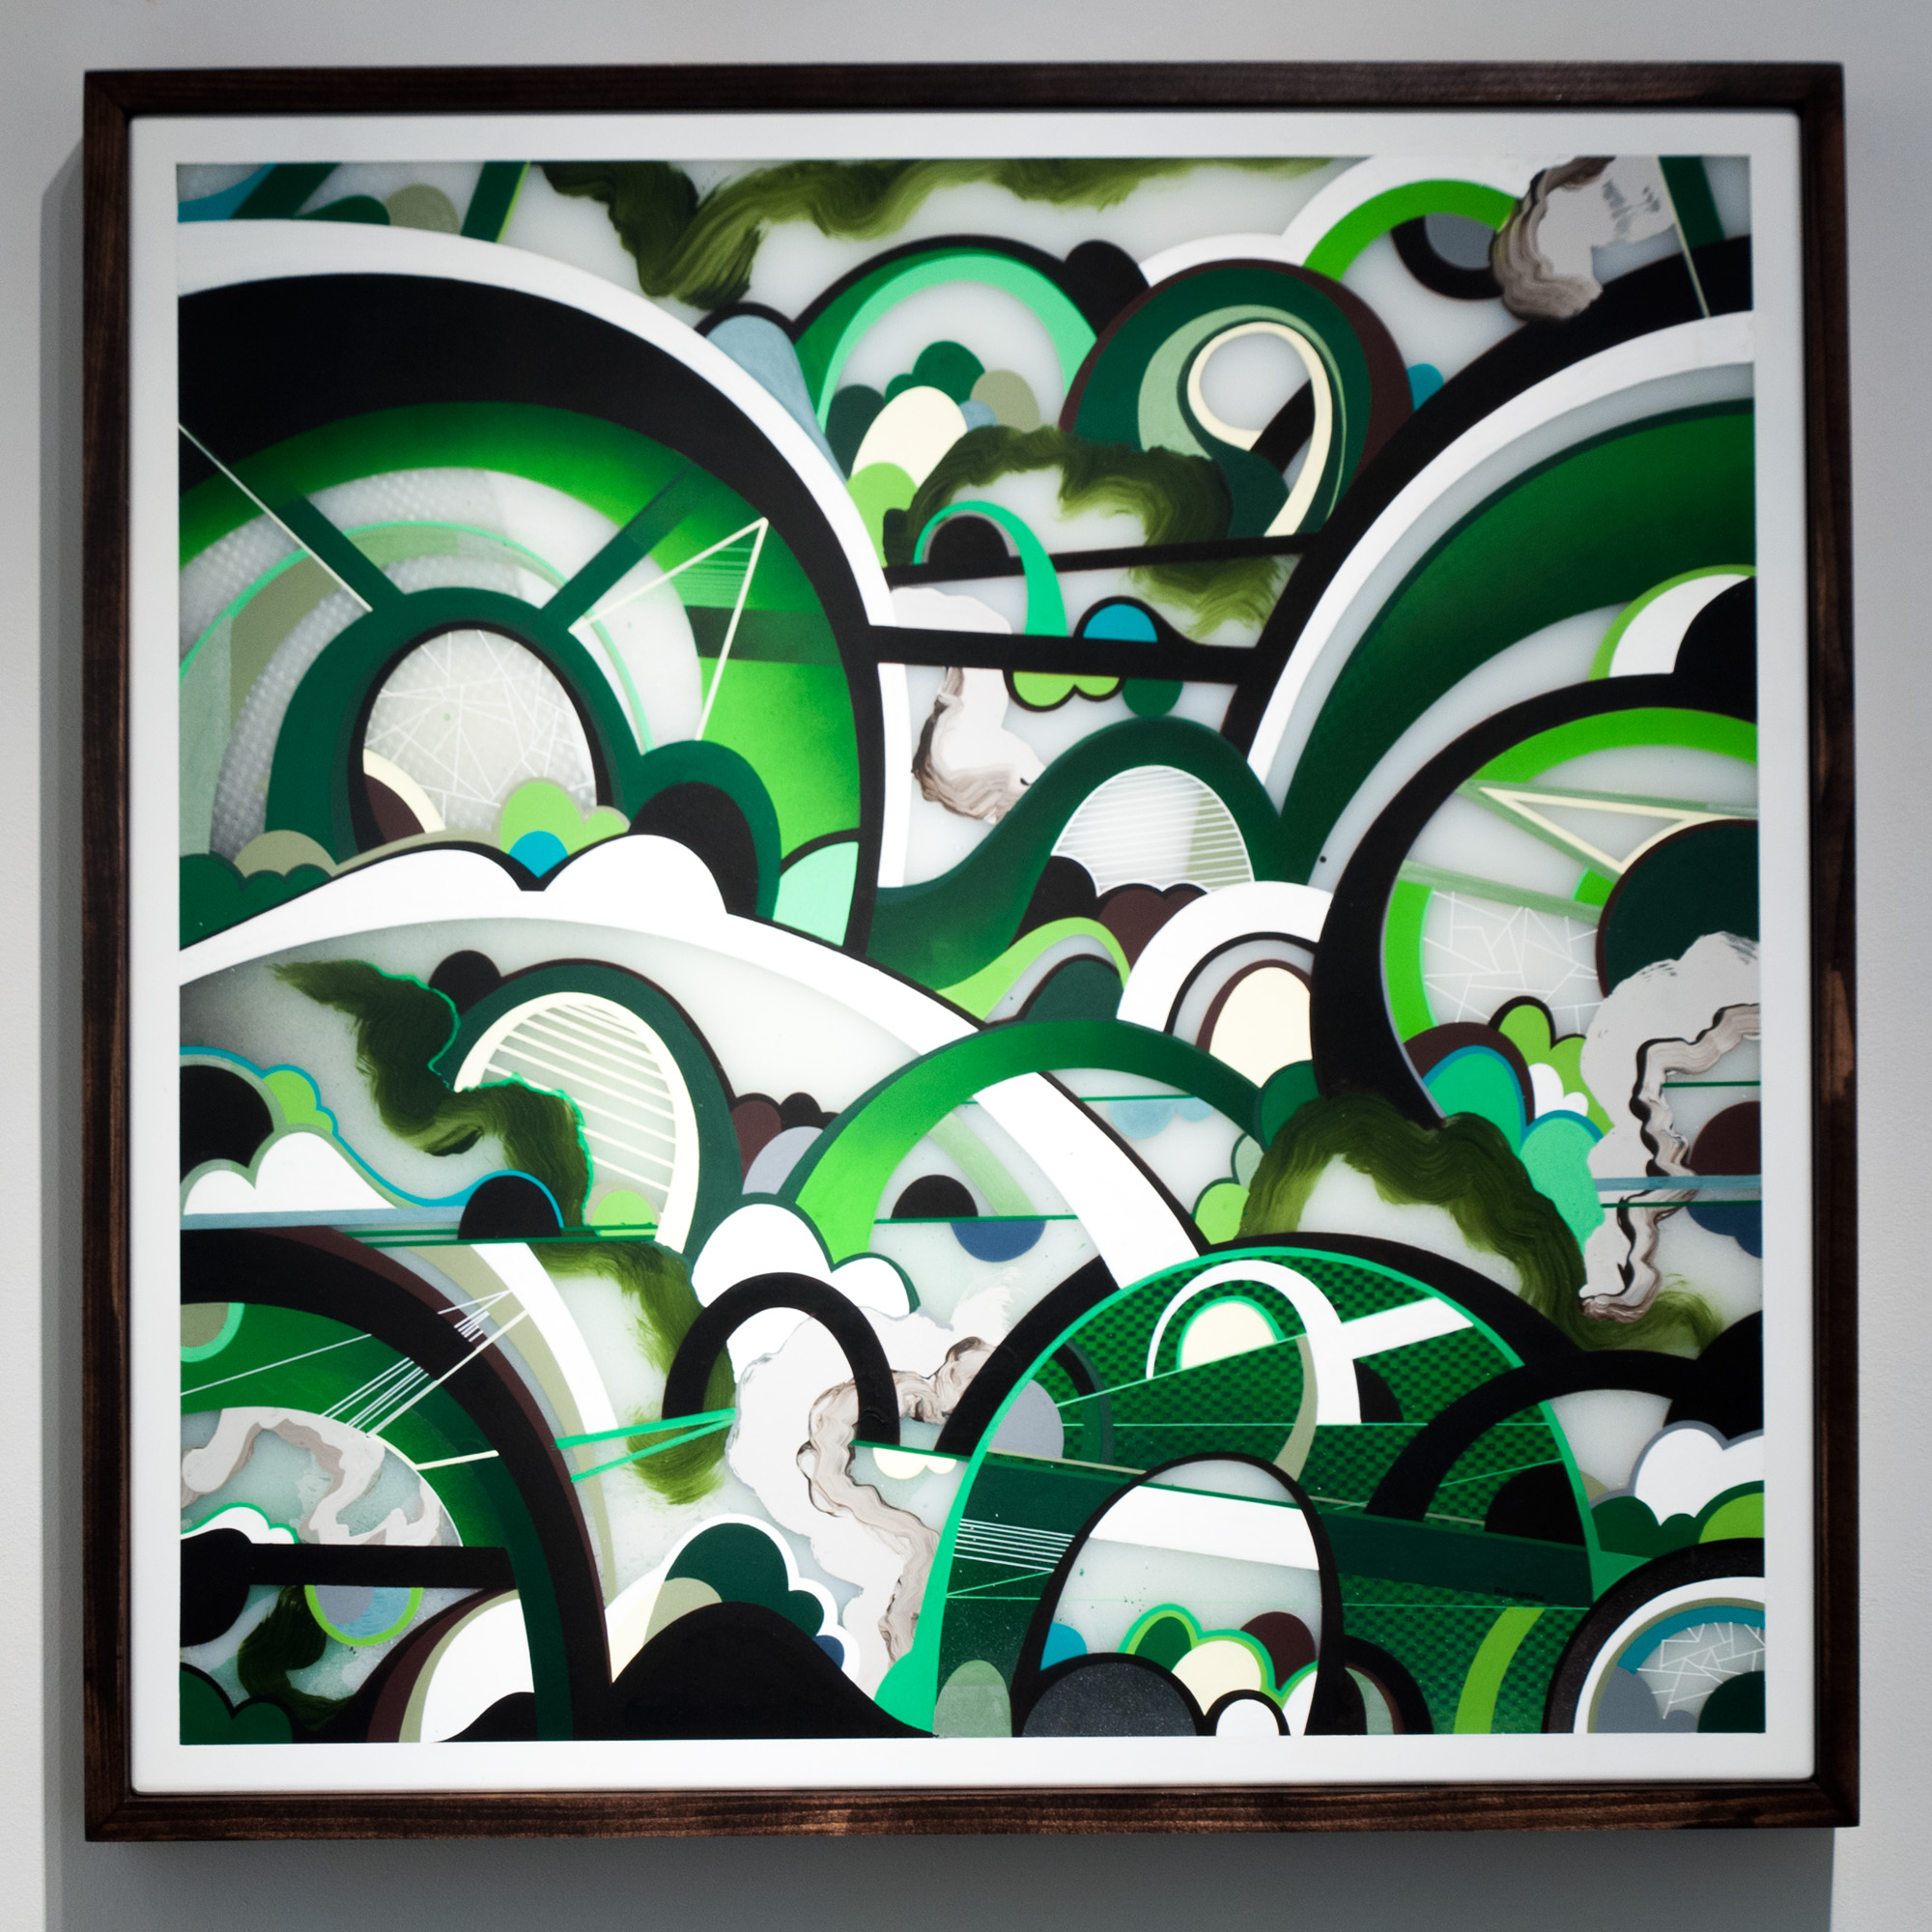 Phil Harris Untitled mixed media on double layered Plexiglas 33 x 33 inches PHA 003G